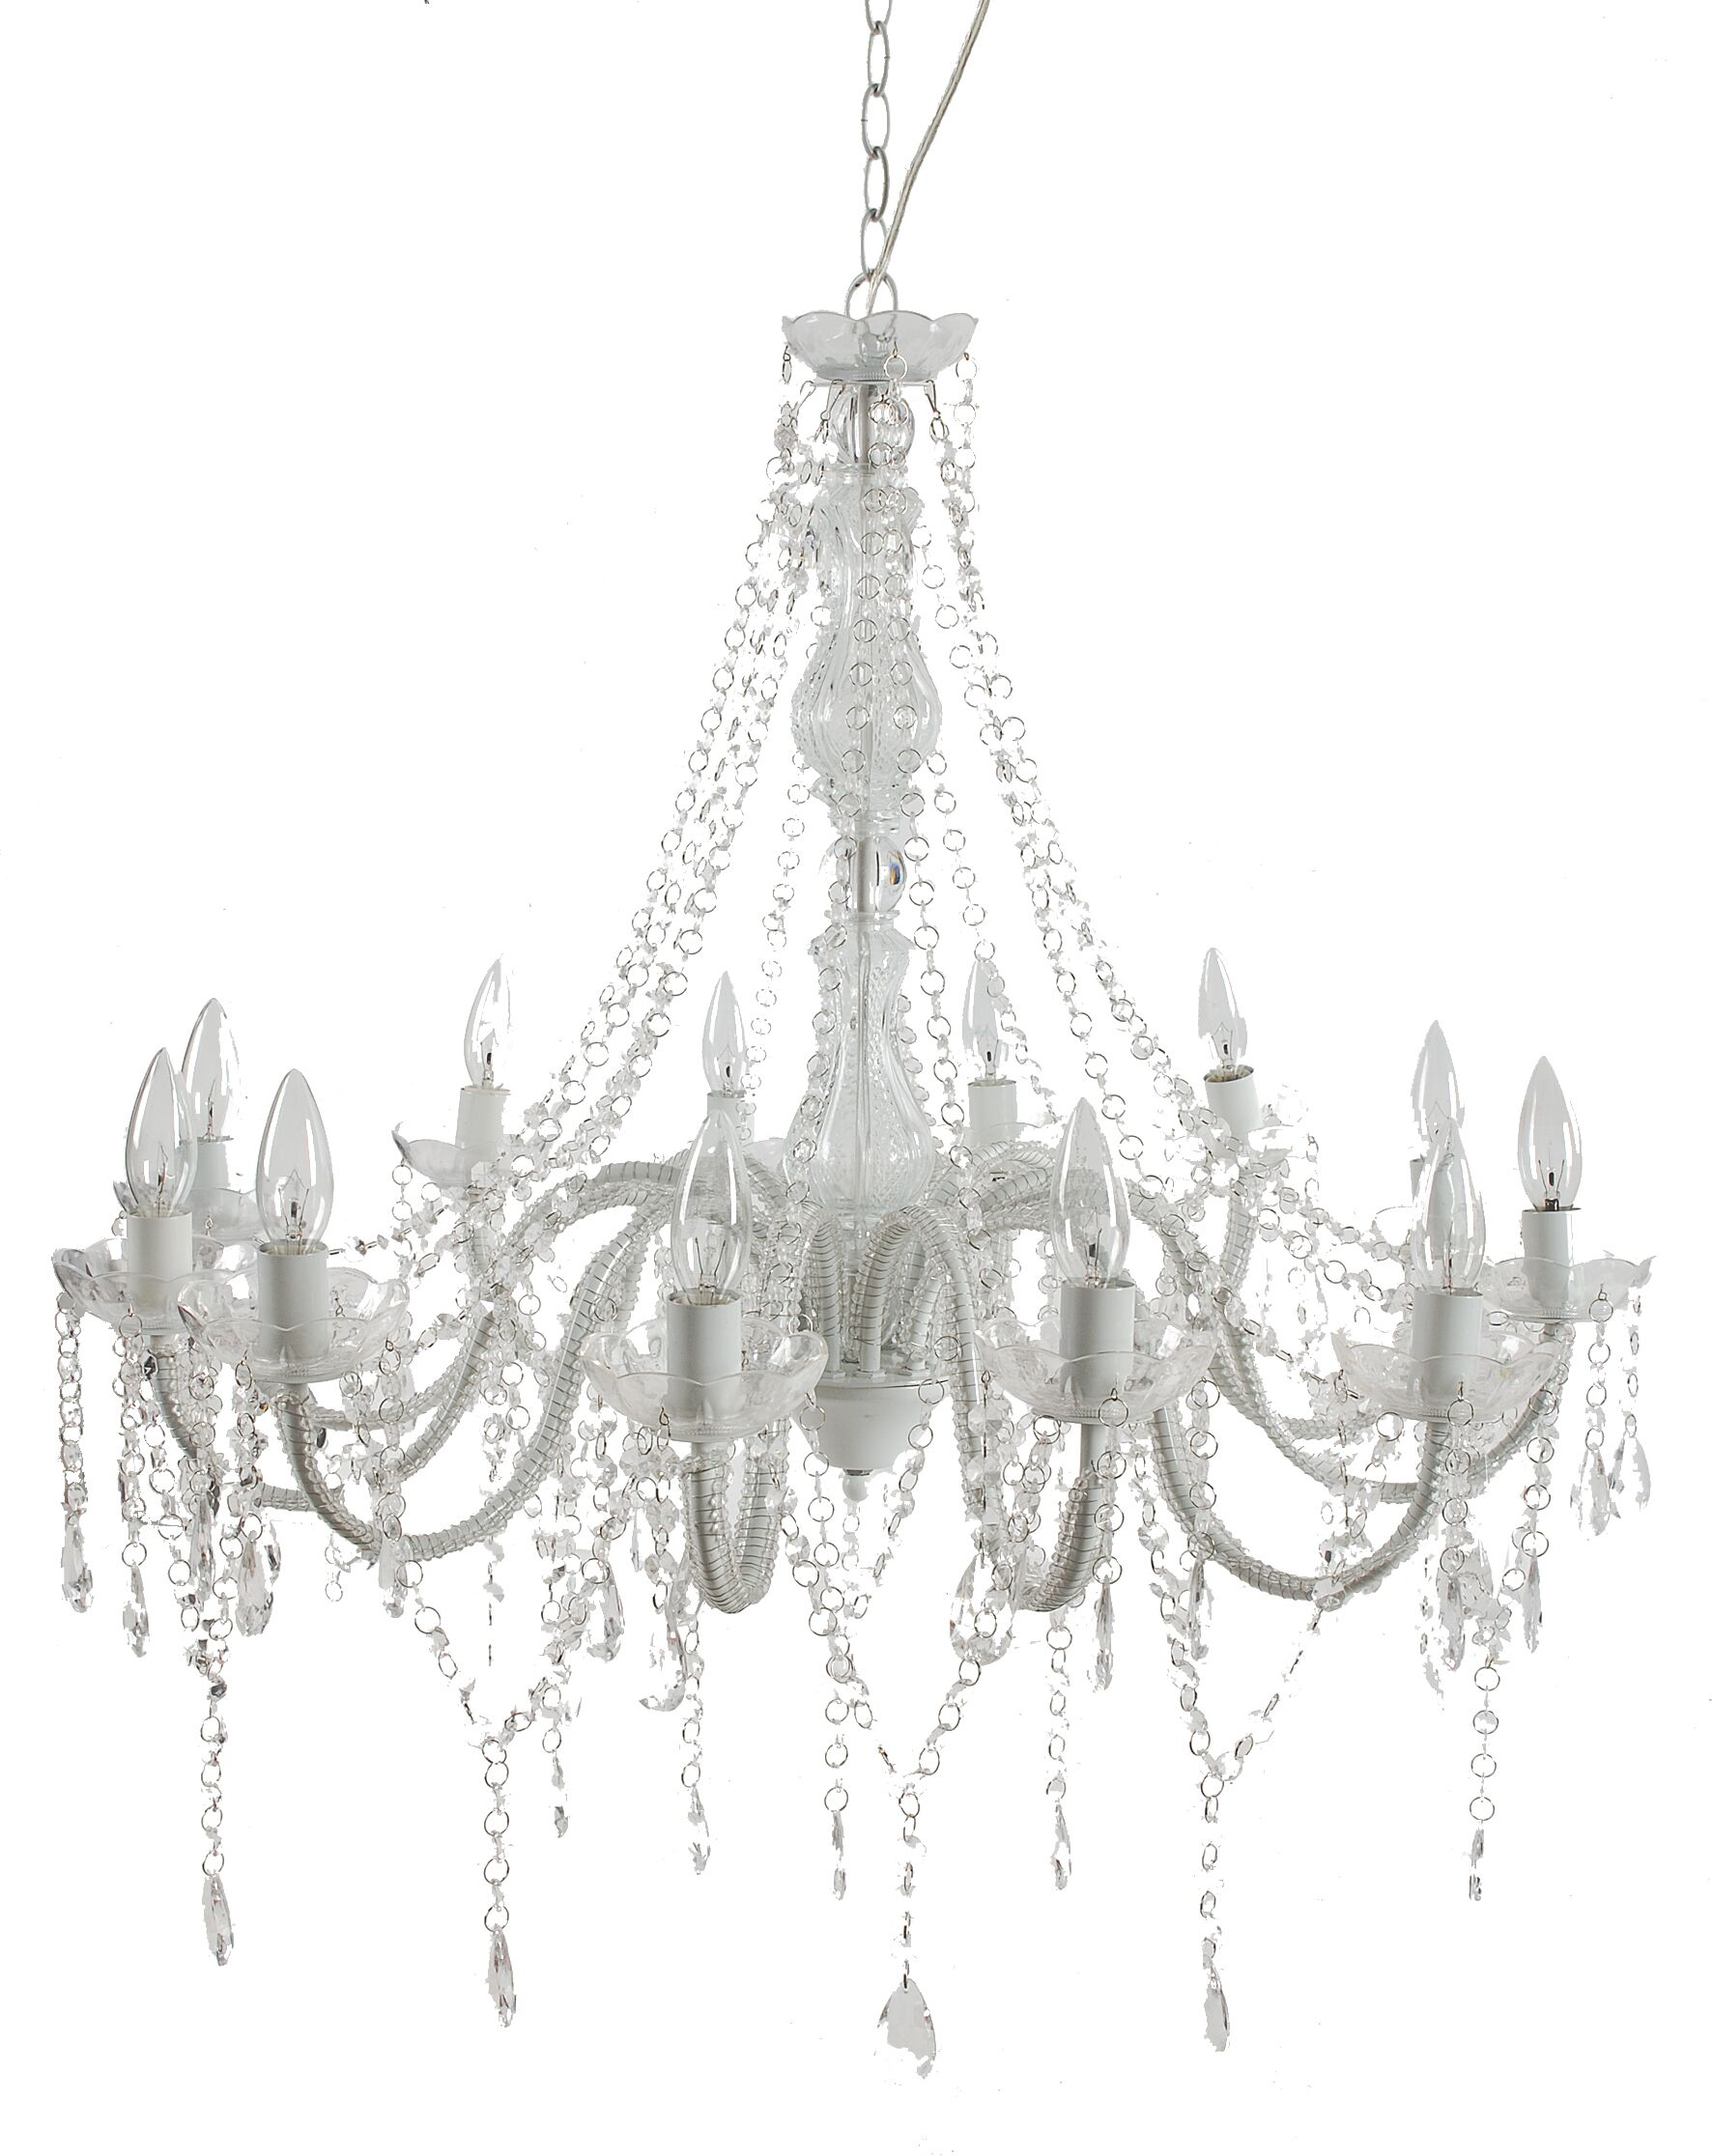 12-Light Candle Style Chandelier